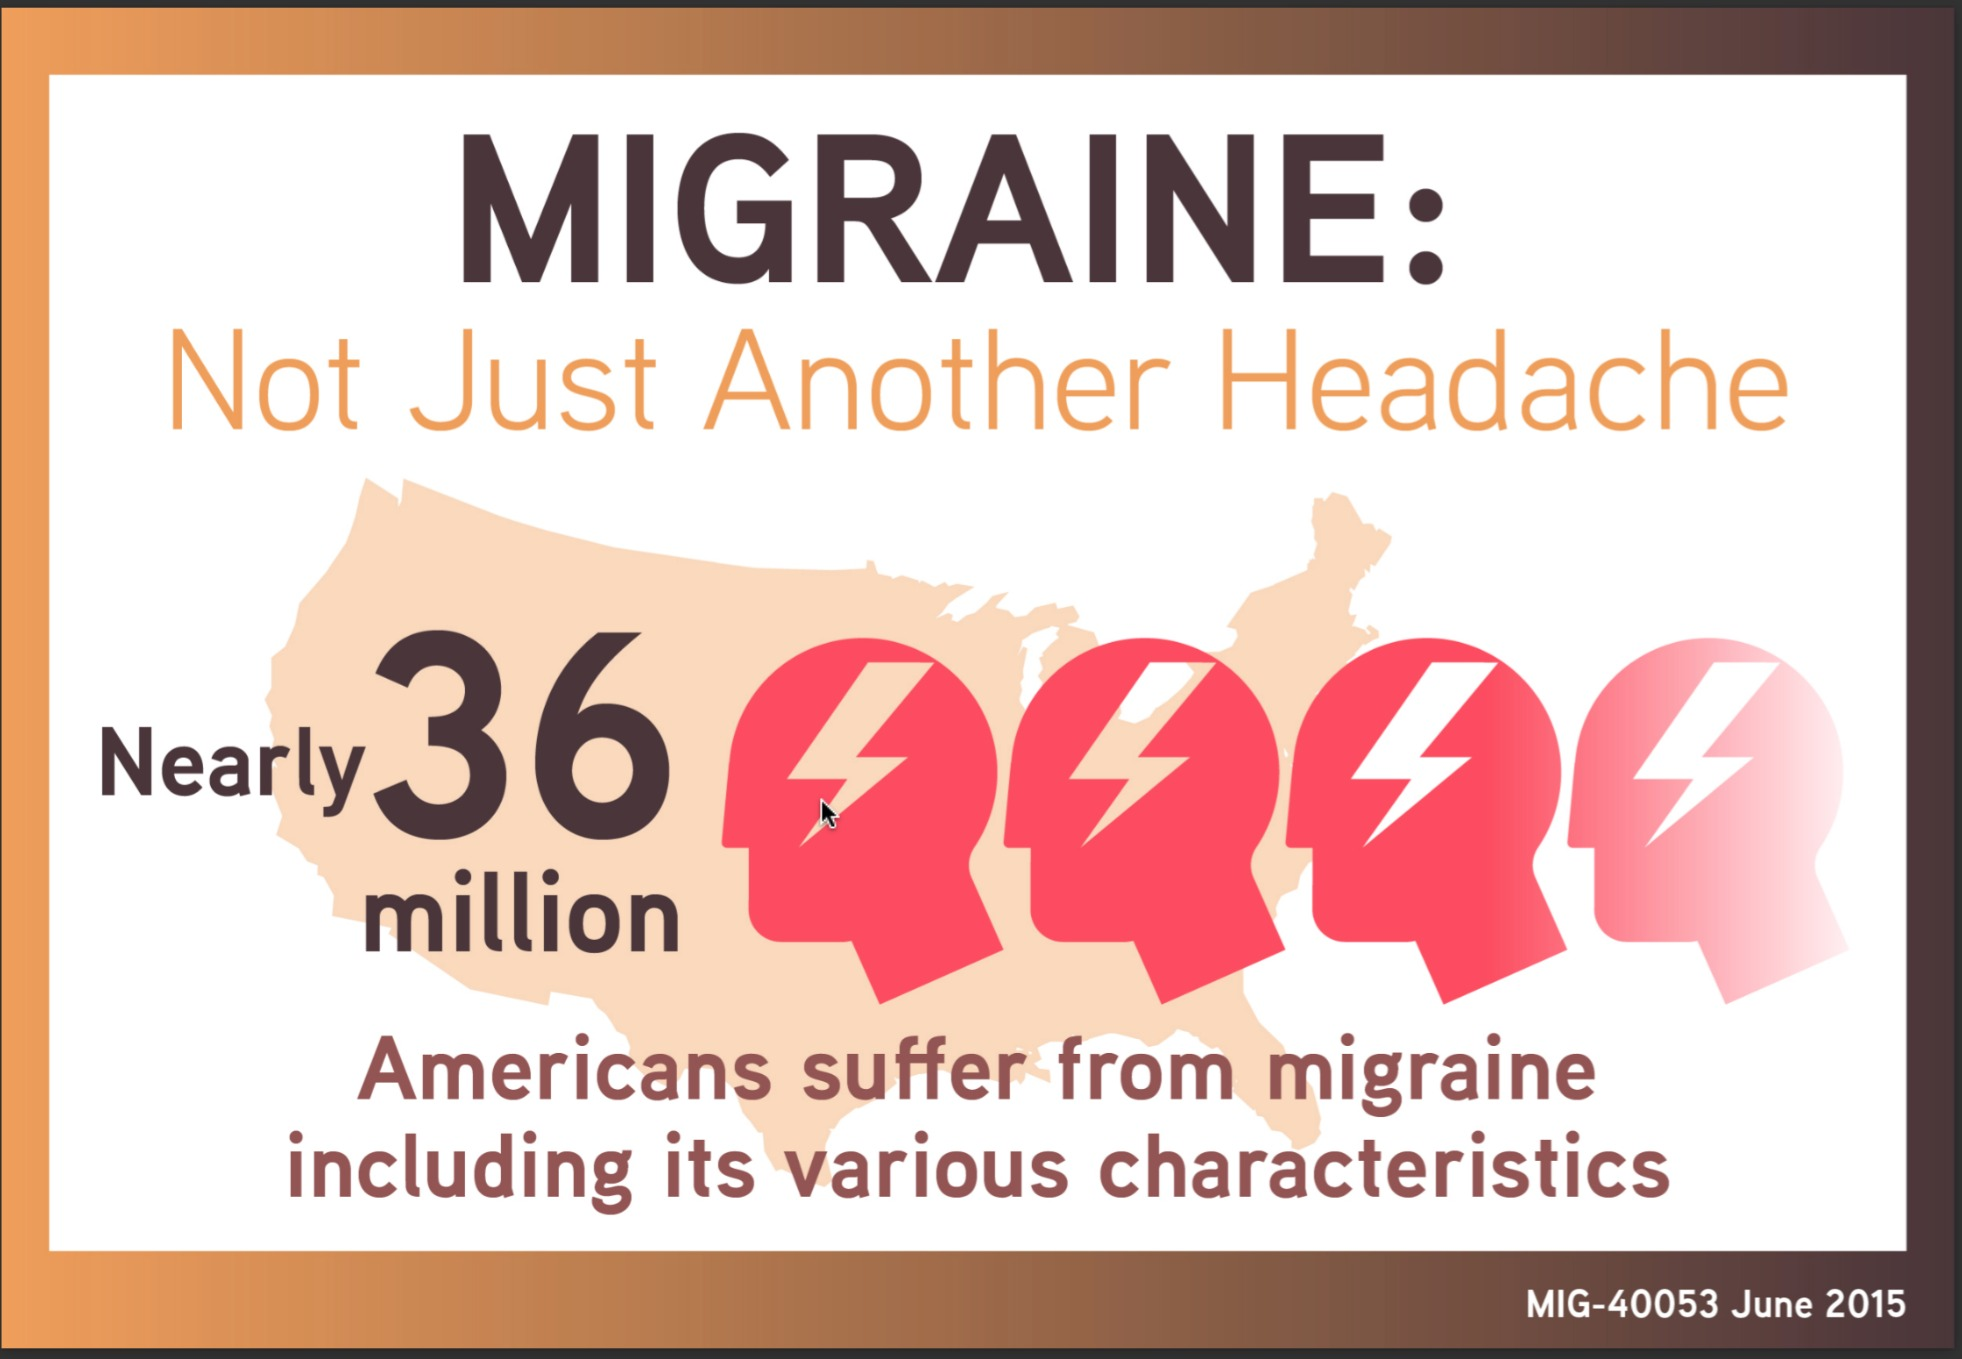 a migraine is more than just a headache